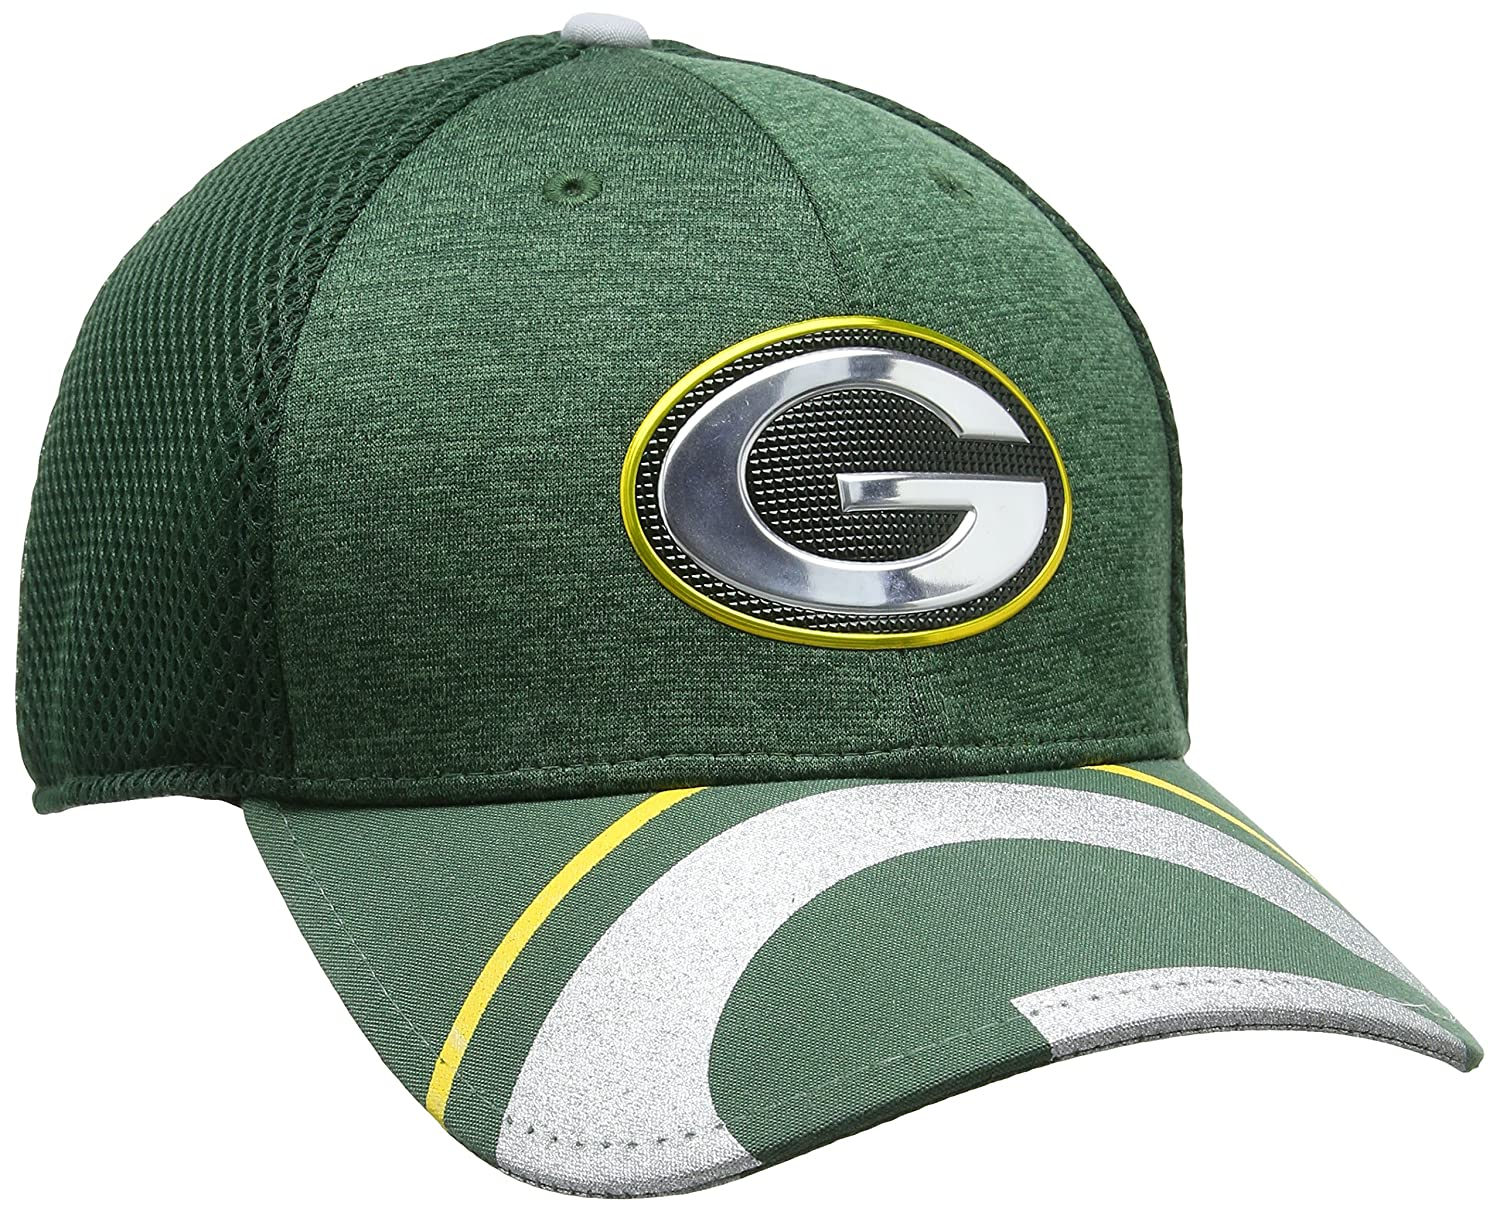 107b0ff56 New Era Men s NFL 17 Official on Stage 39thirty Green Bay Packers Baseball  Cap  Amazon.co.uk  Sports   Outdoors